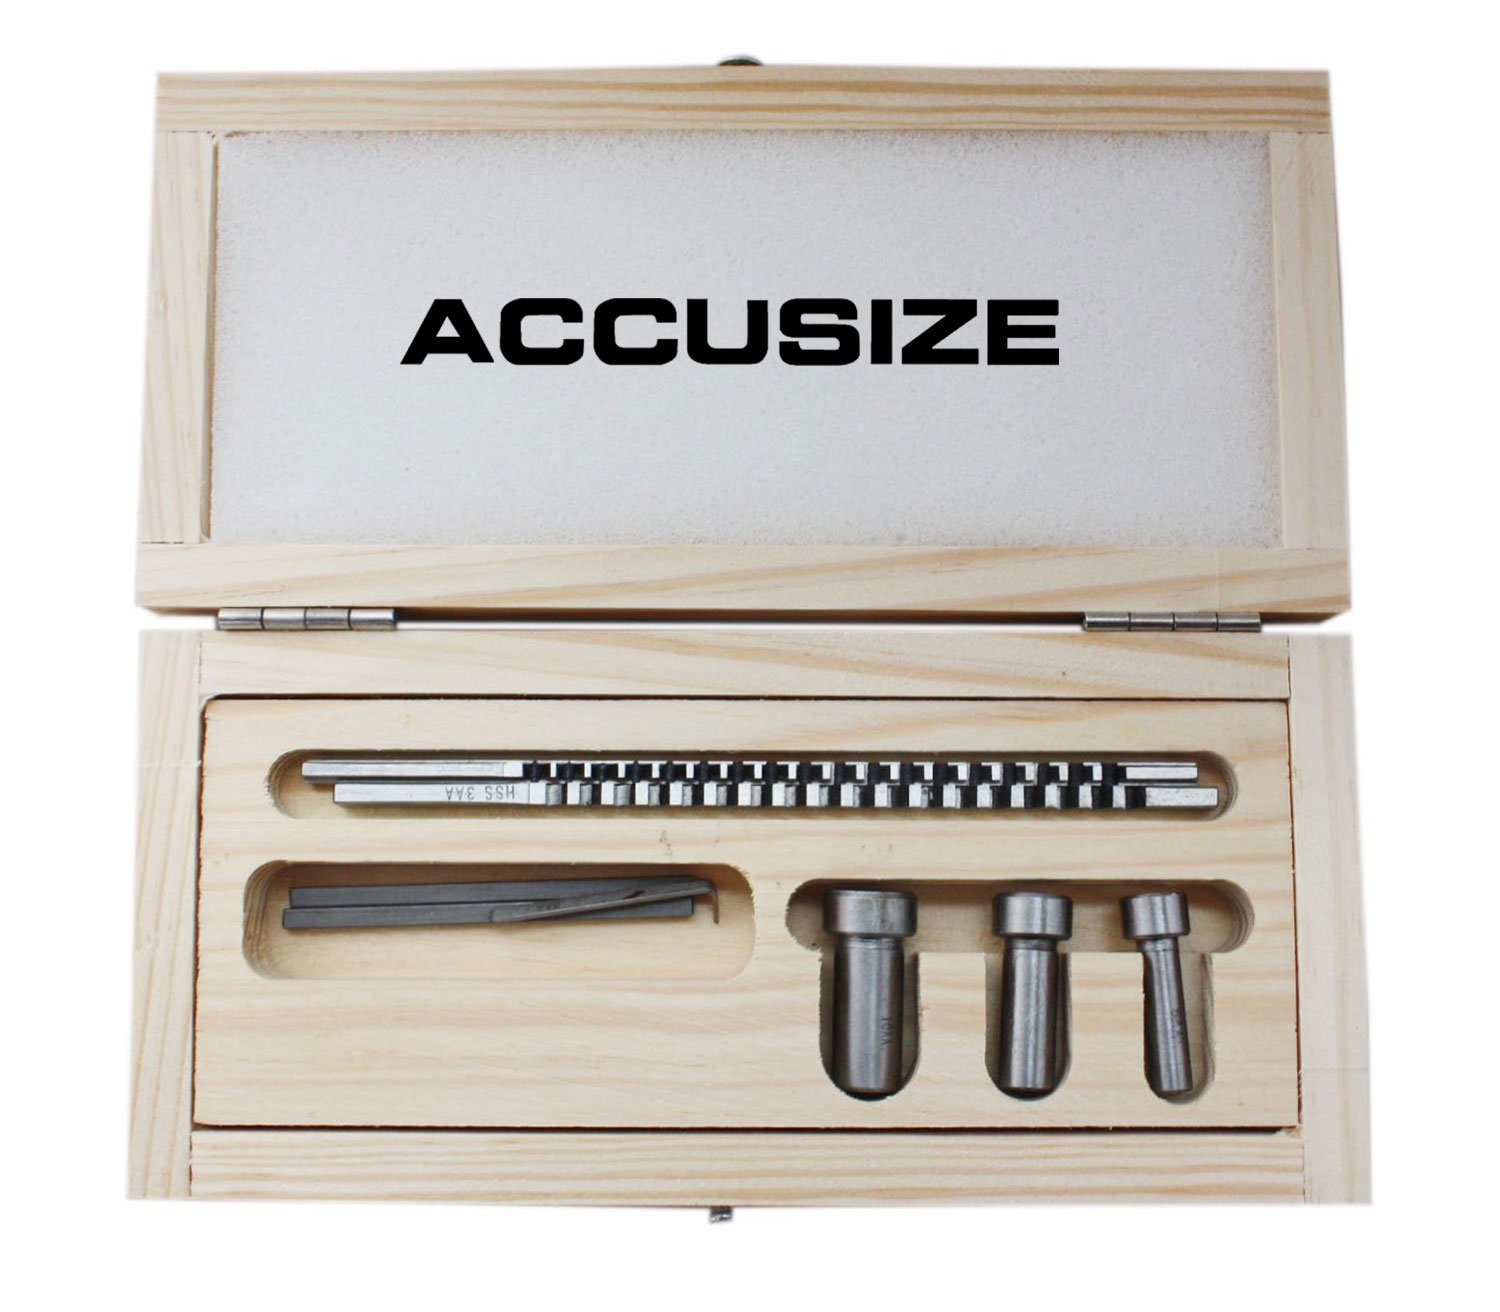 Accusize - No.60 Metric HSS Keyway Broach Sets in Fitted Box, 5100-0060